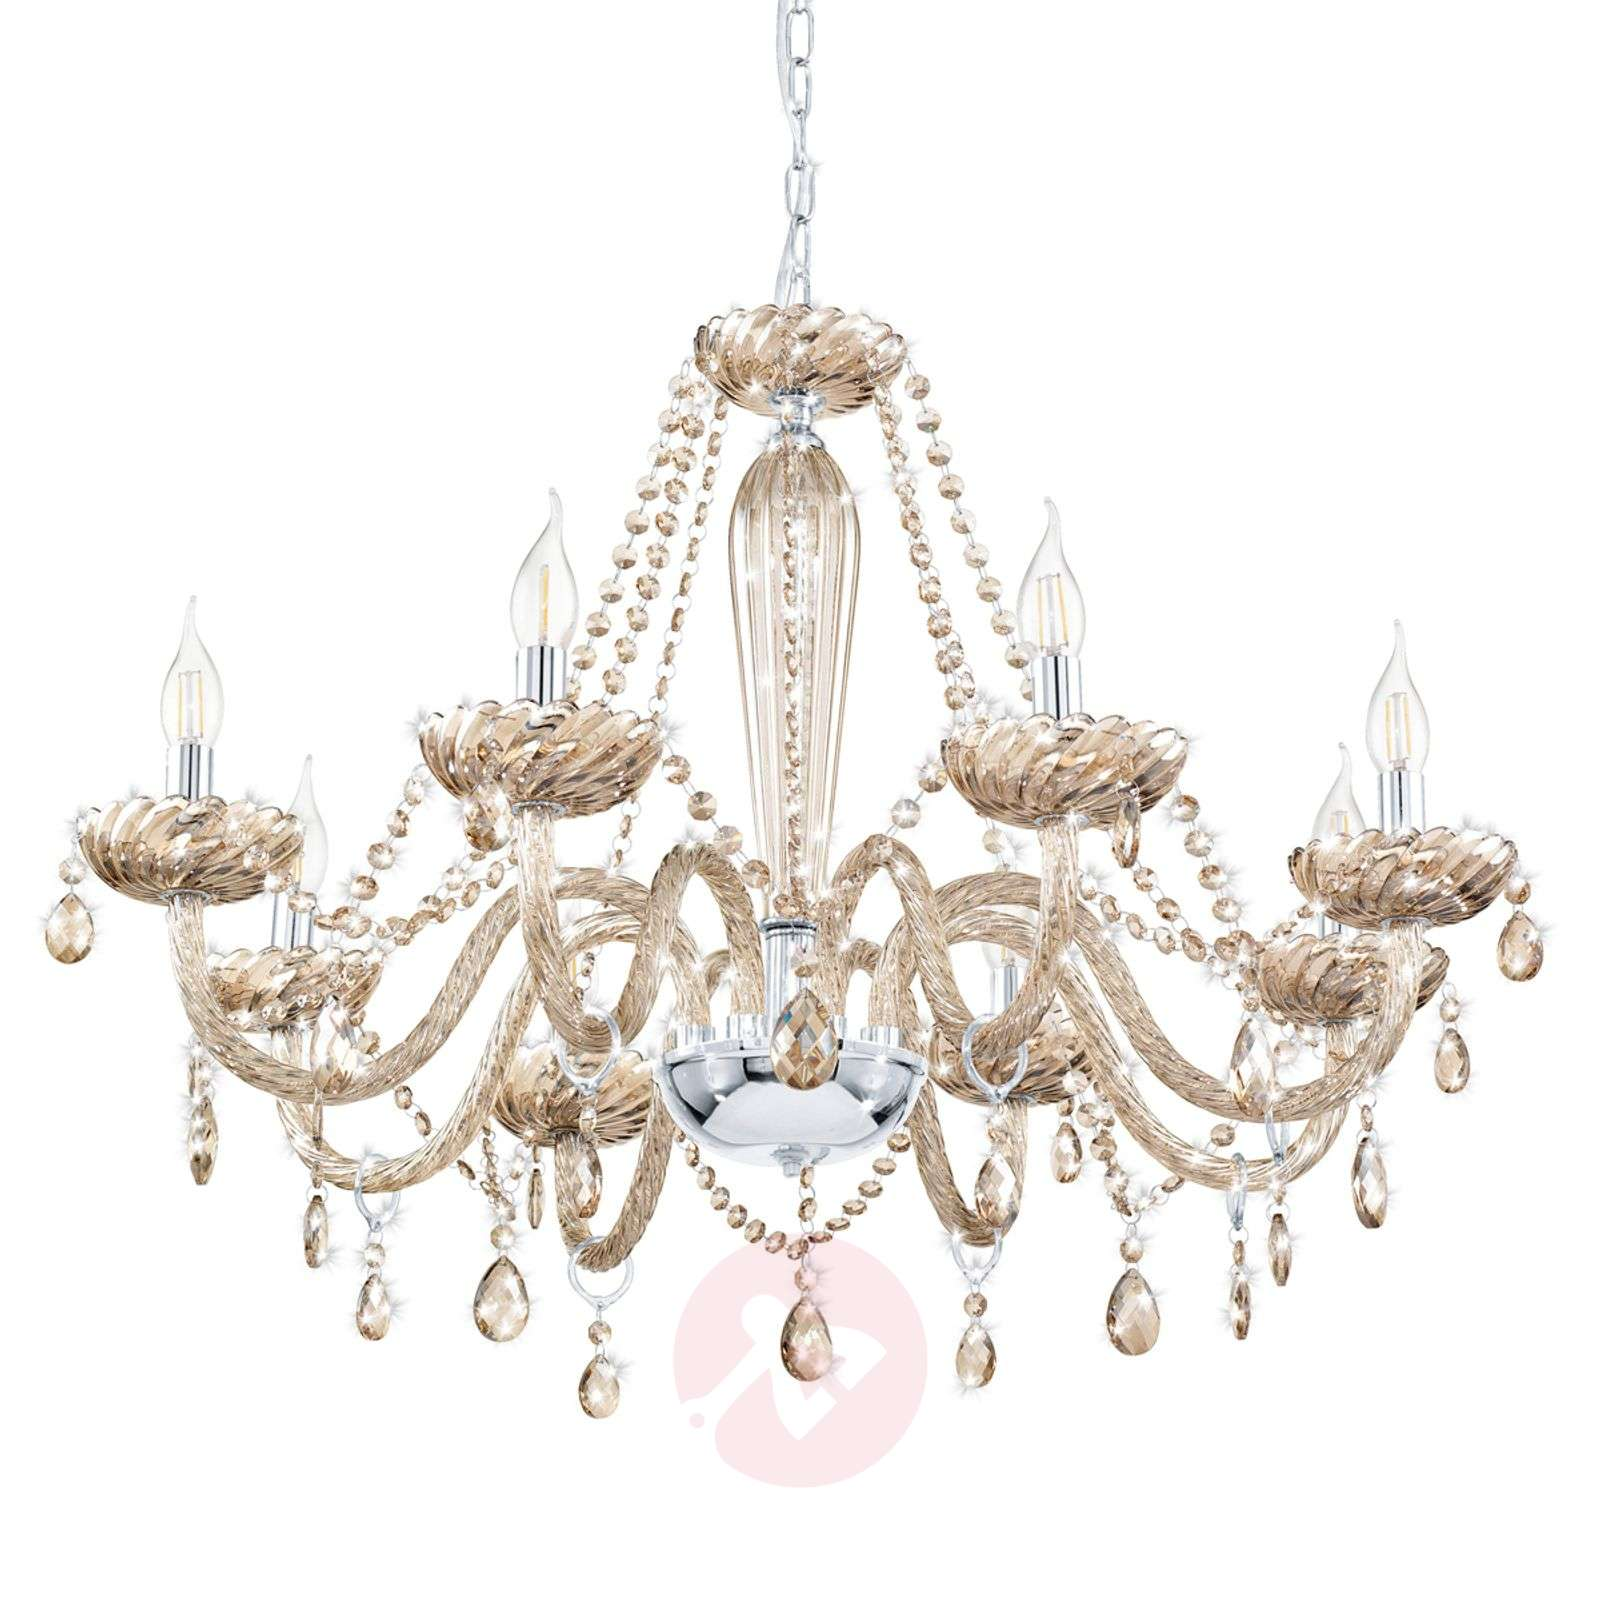 Cognac Coloured Glass Basilano Chandelier 3031837 01